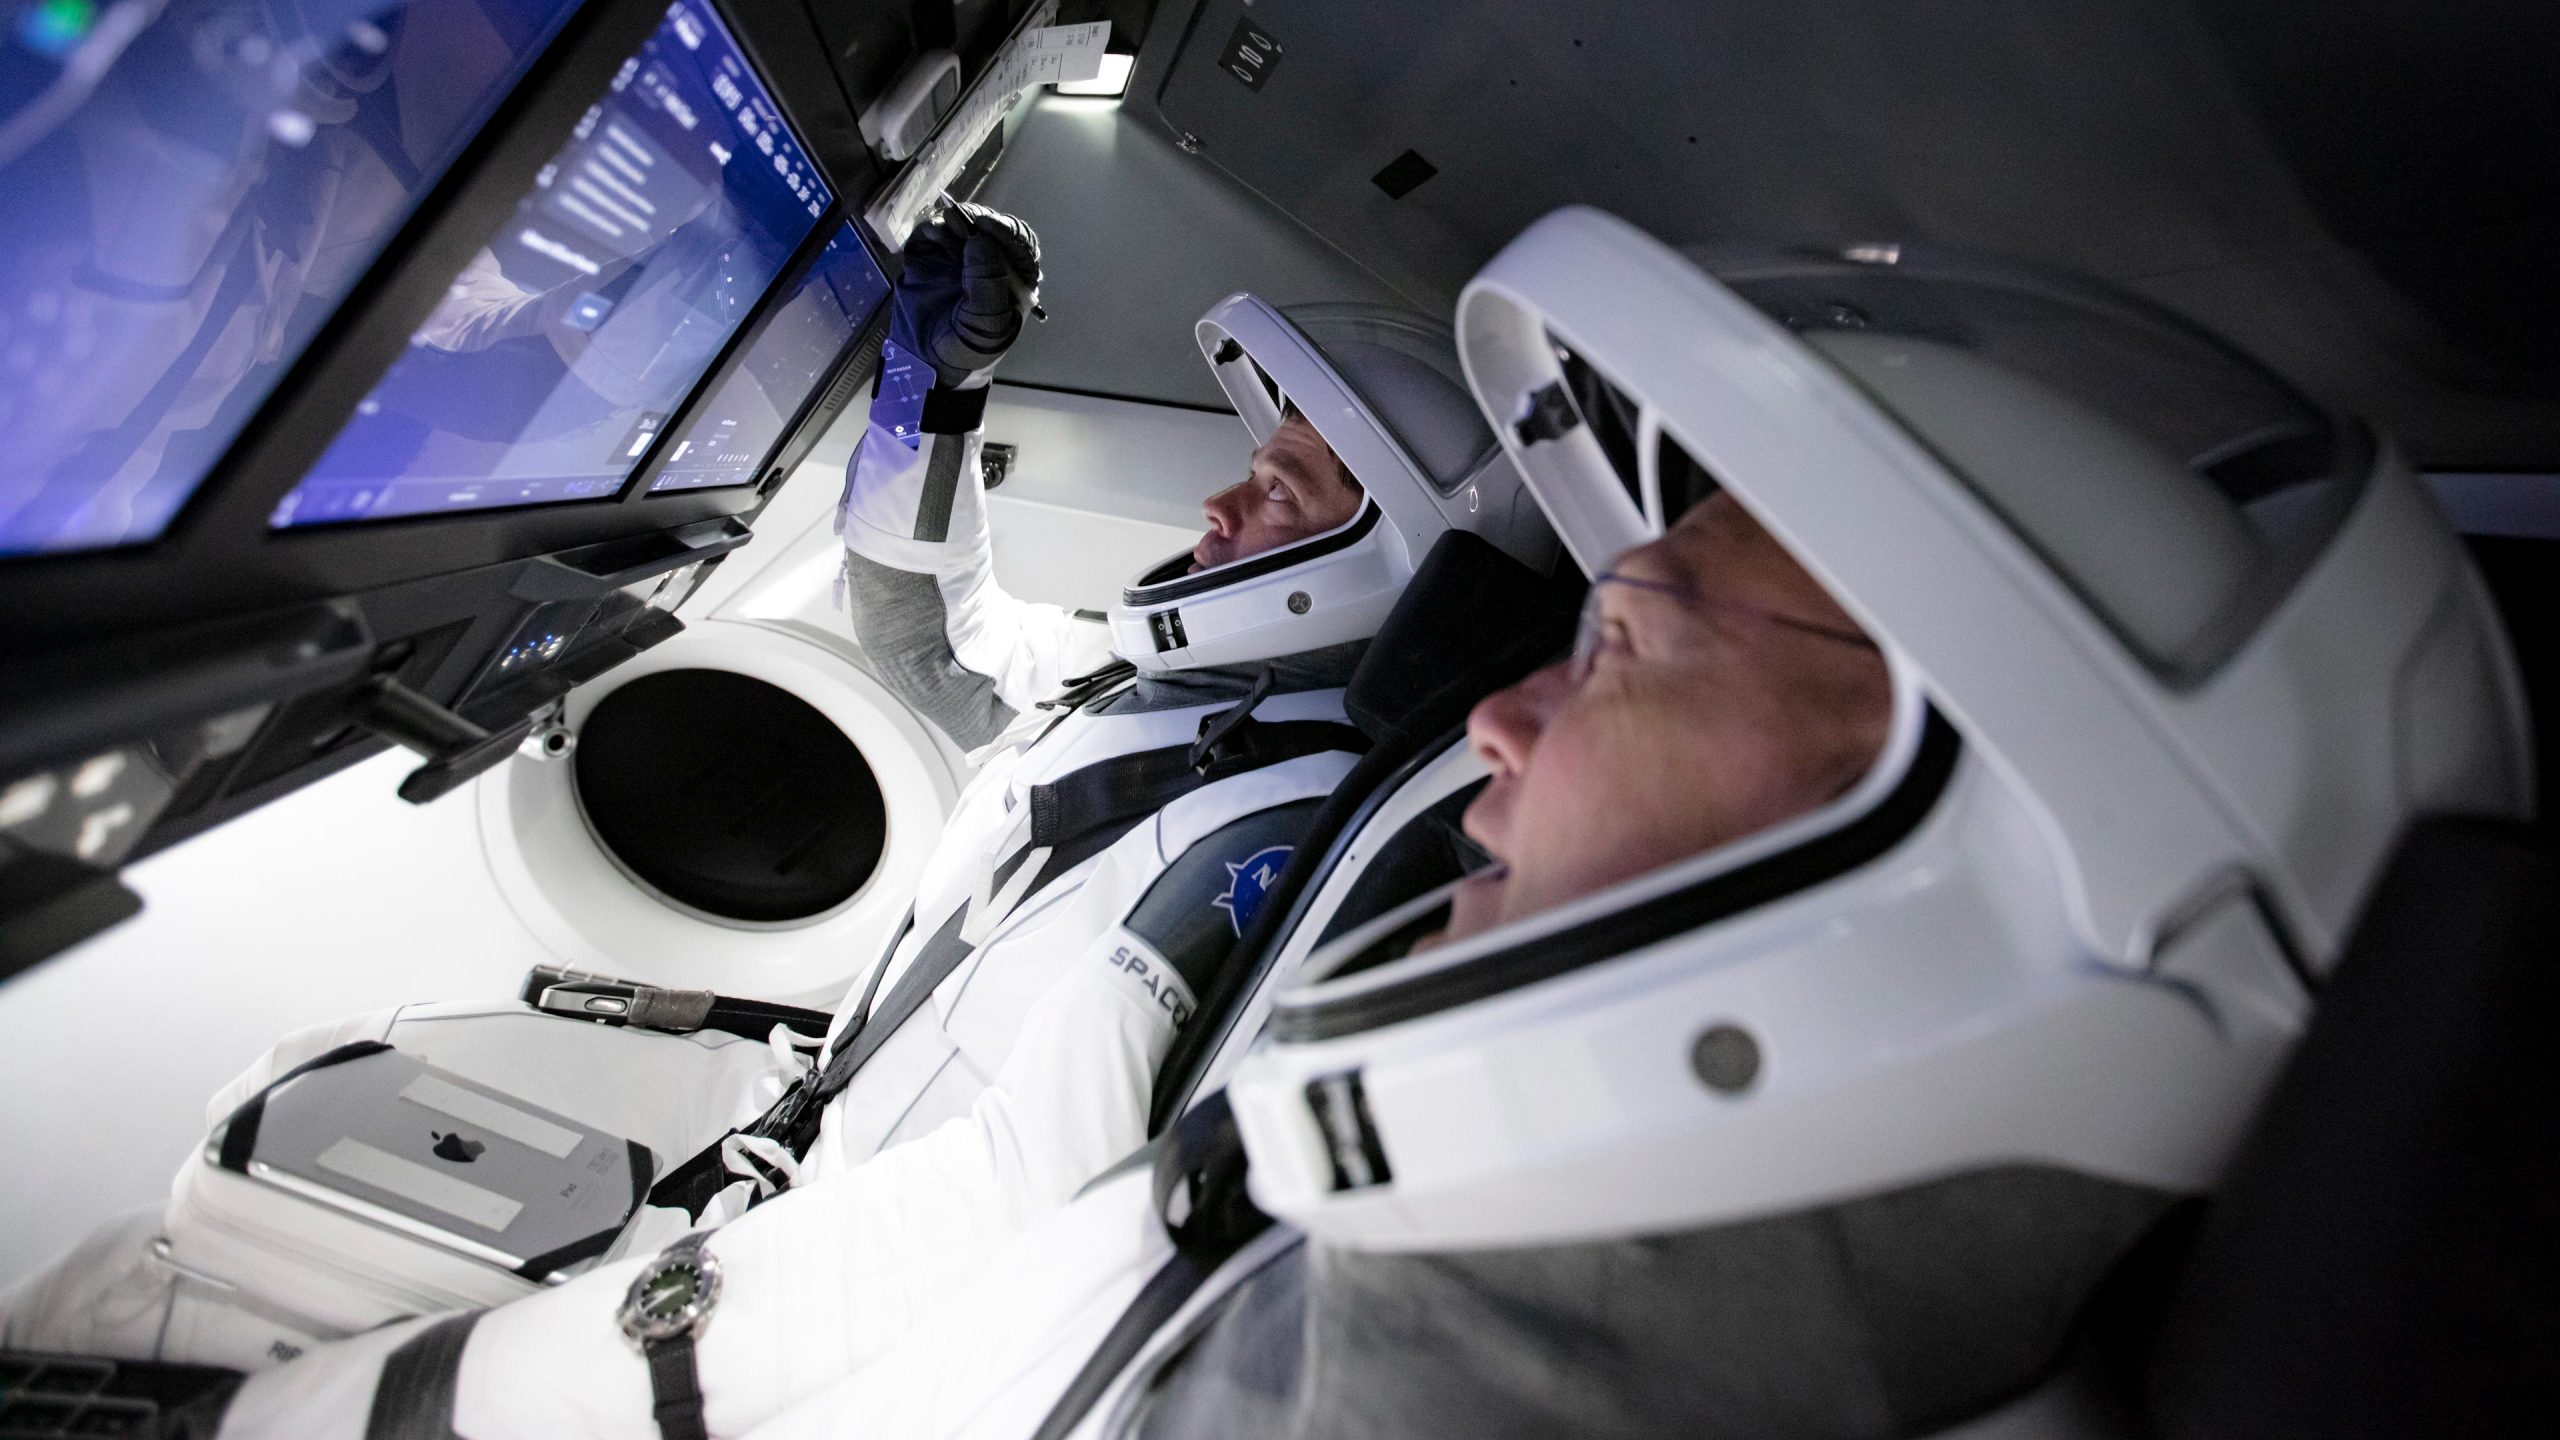 NASA Astronauts Train to Fly the SpaceX Crew Dragon Spacecraft